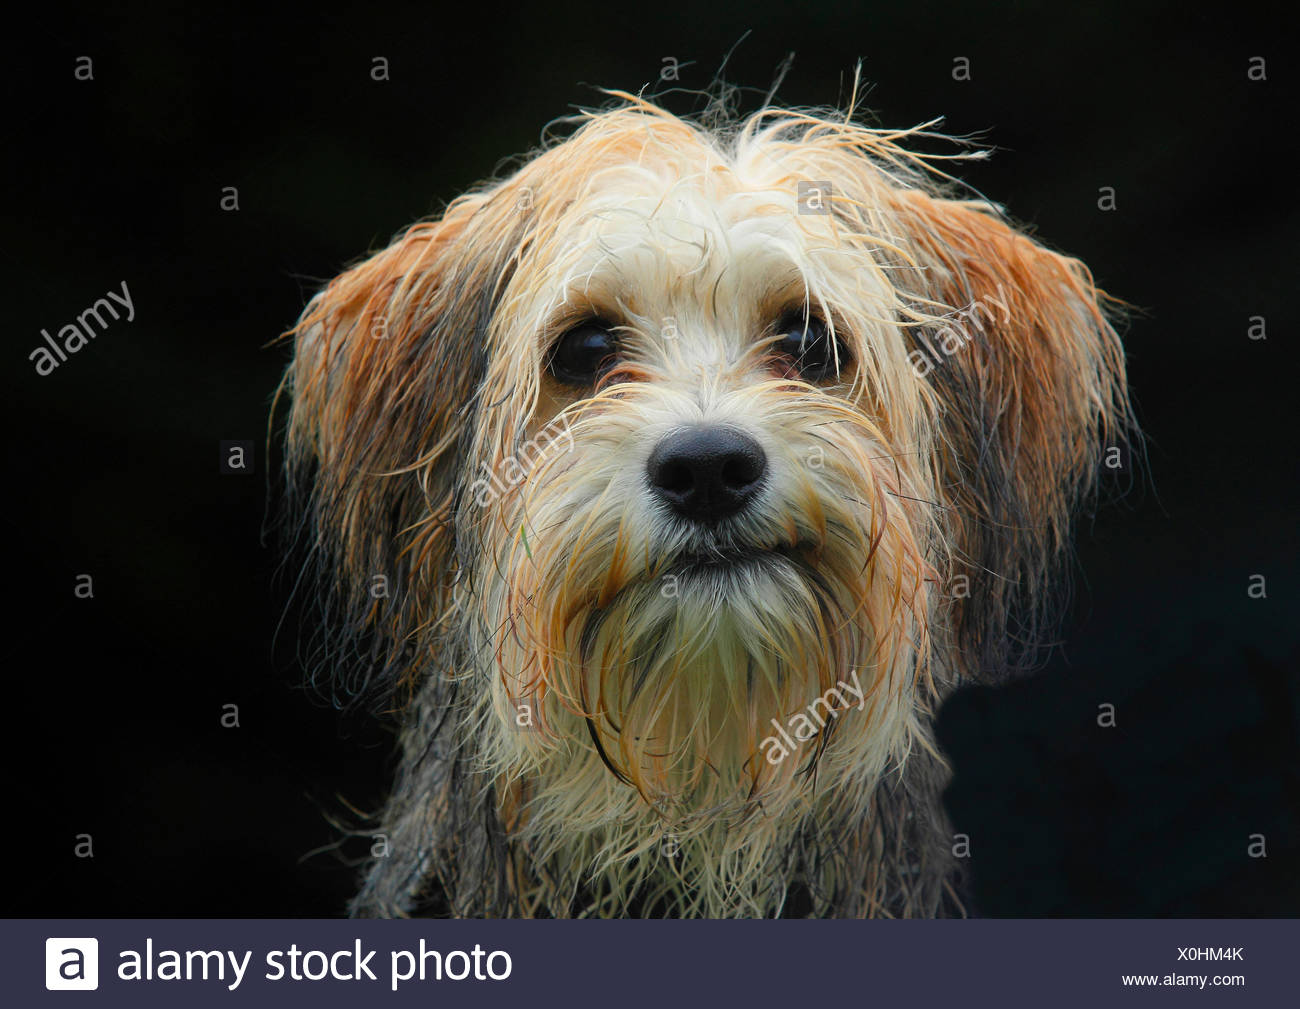 mixed breed dog (Canis lupus f. familiaris), five months old male Maltese Chihuahua mixed breed dog, portrait with black background, Germany - Stock Image